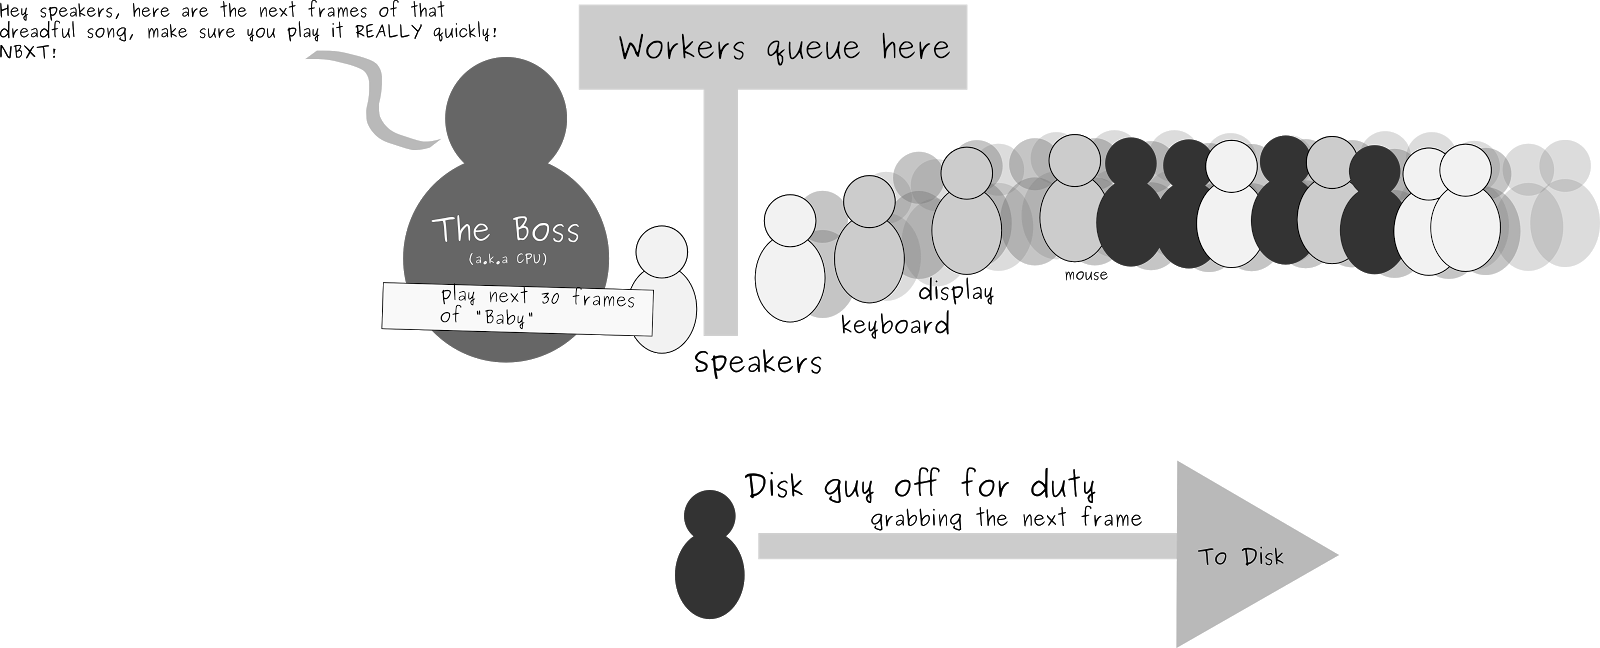 Fast workers queue